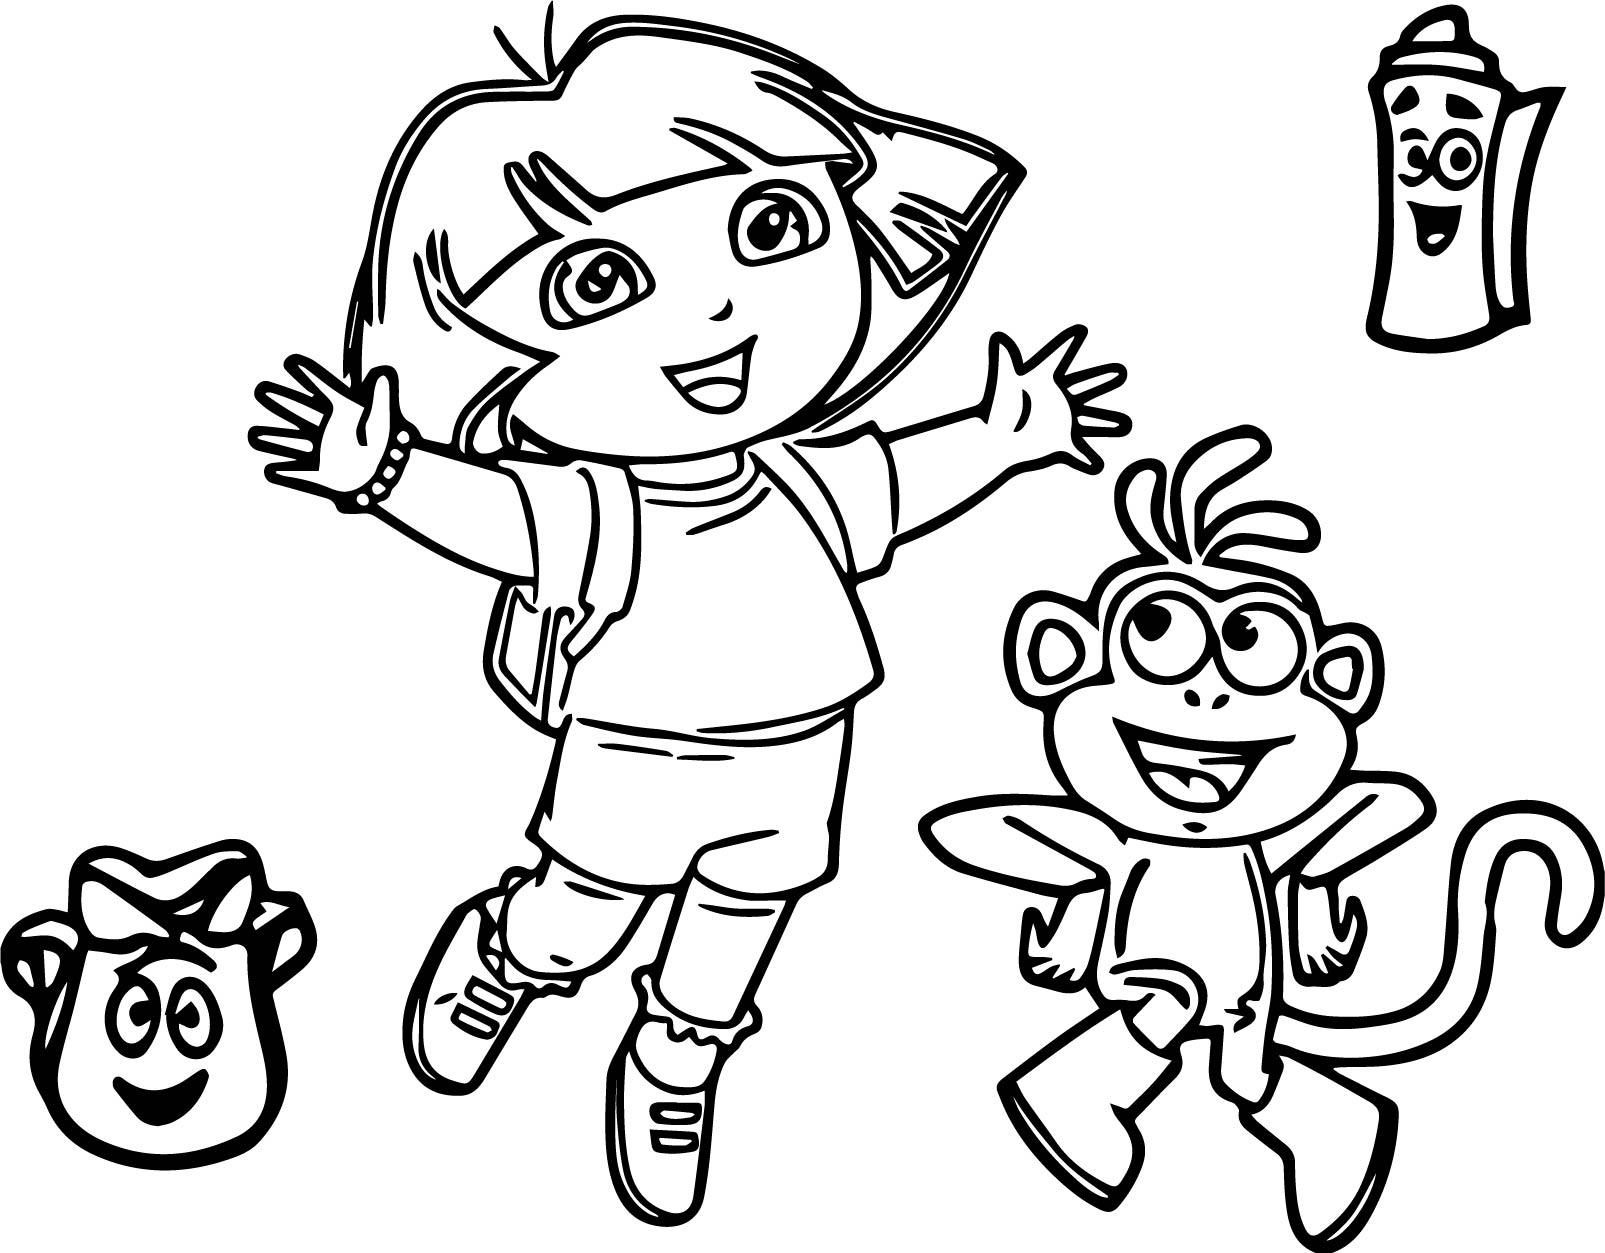 Dora Explorer Cartoon Coloring Page